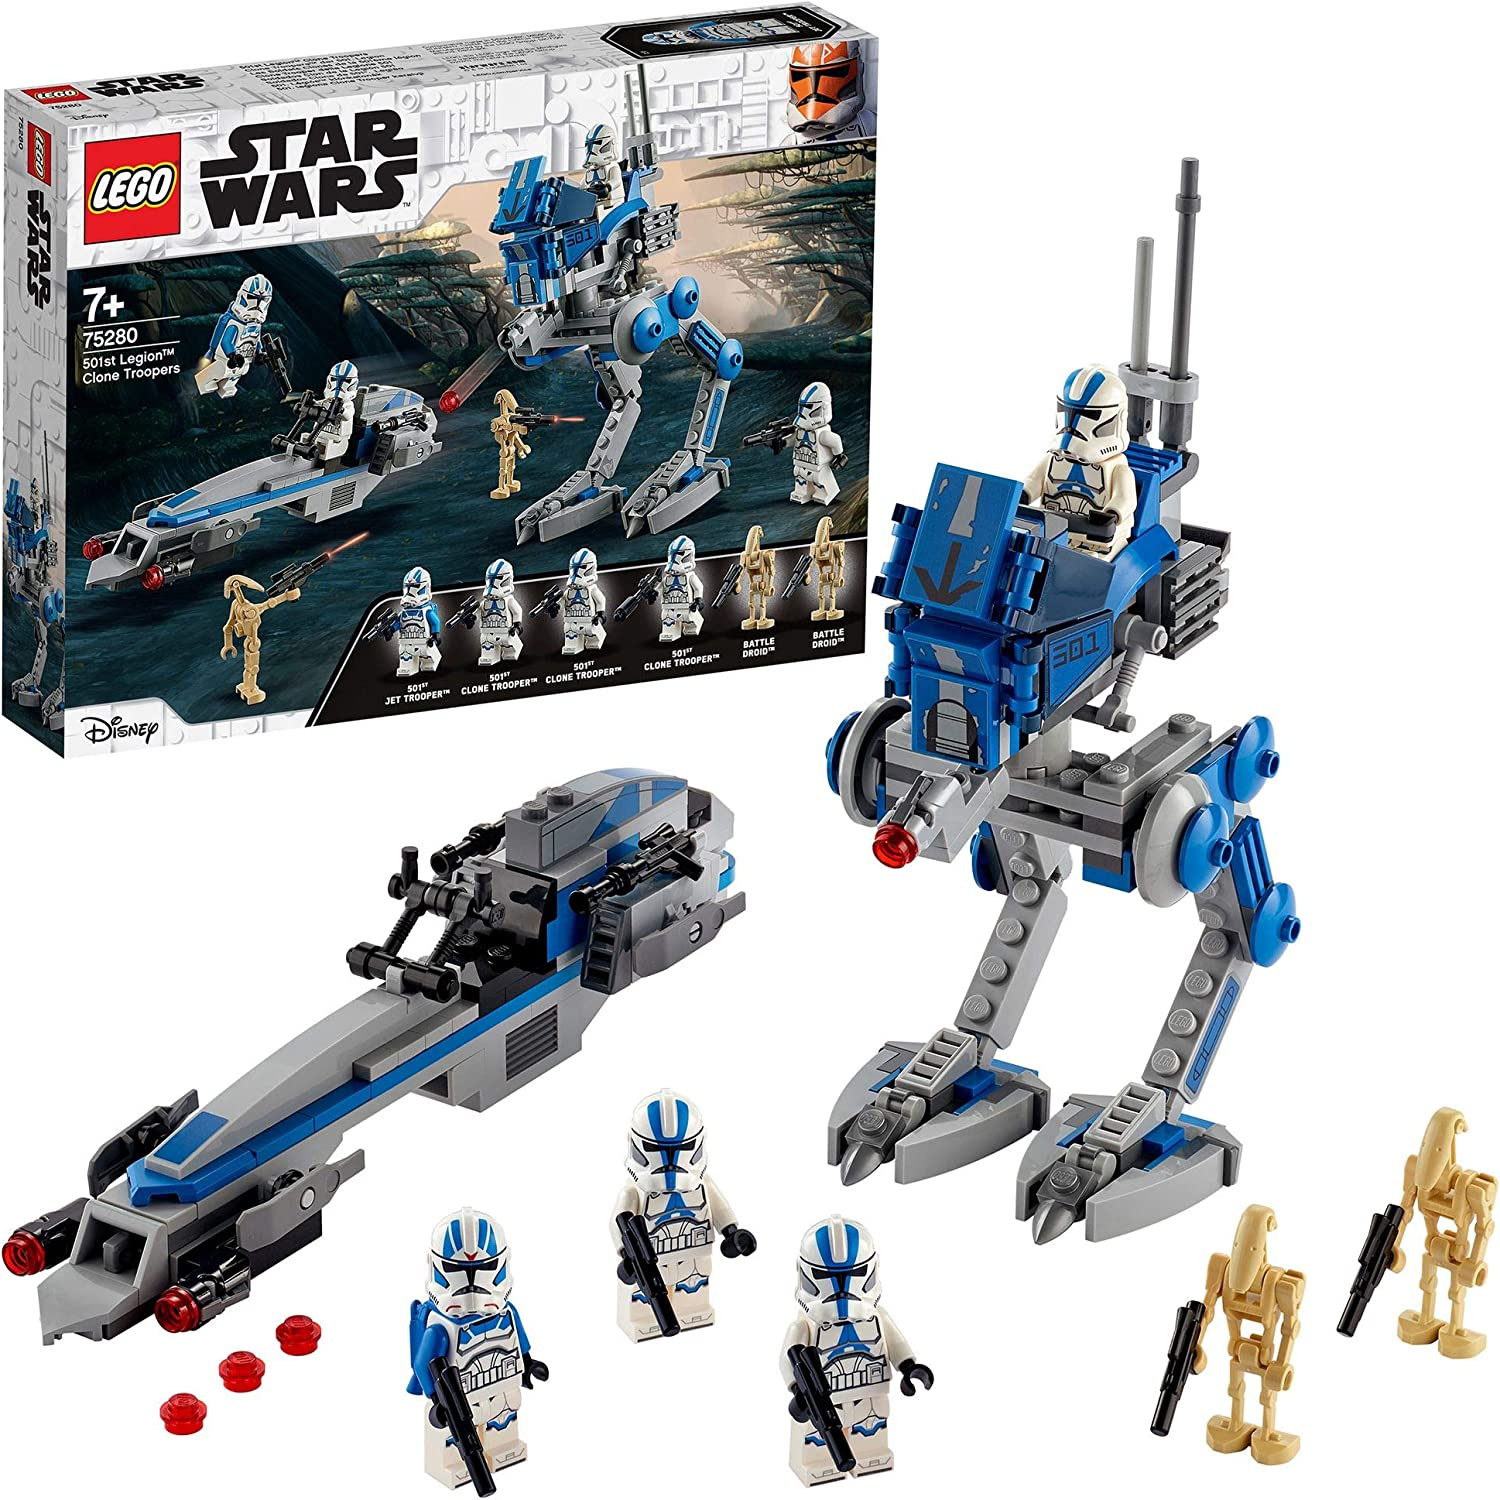 LEGO Star Wars TM Soldados Clon de la Legión 501 Set con Droides de Batalla y AT-RT Walker, Multicolor (75280): Amazon.es: Juguetes y juegos